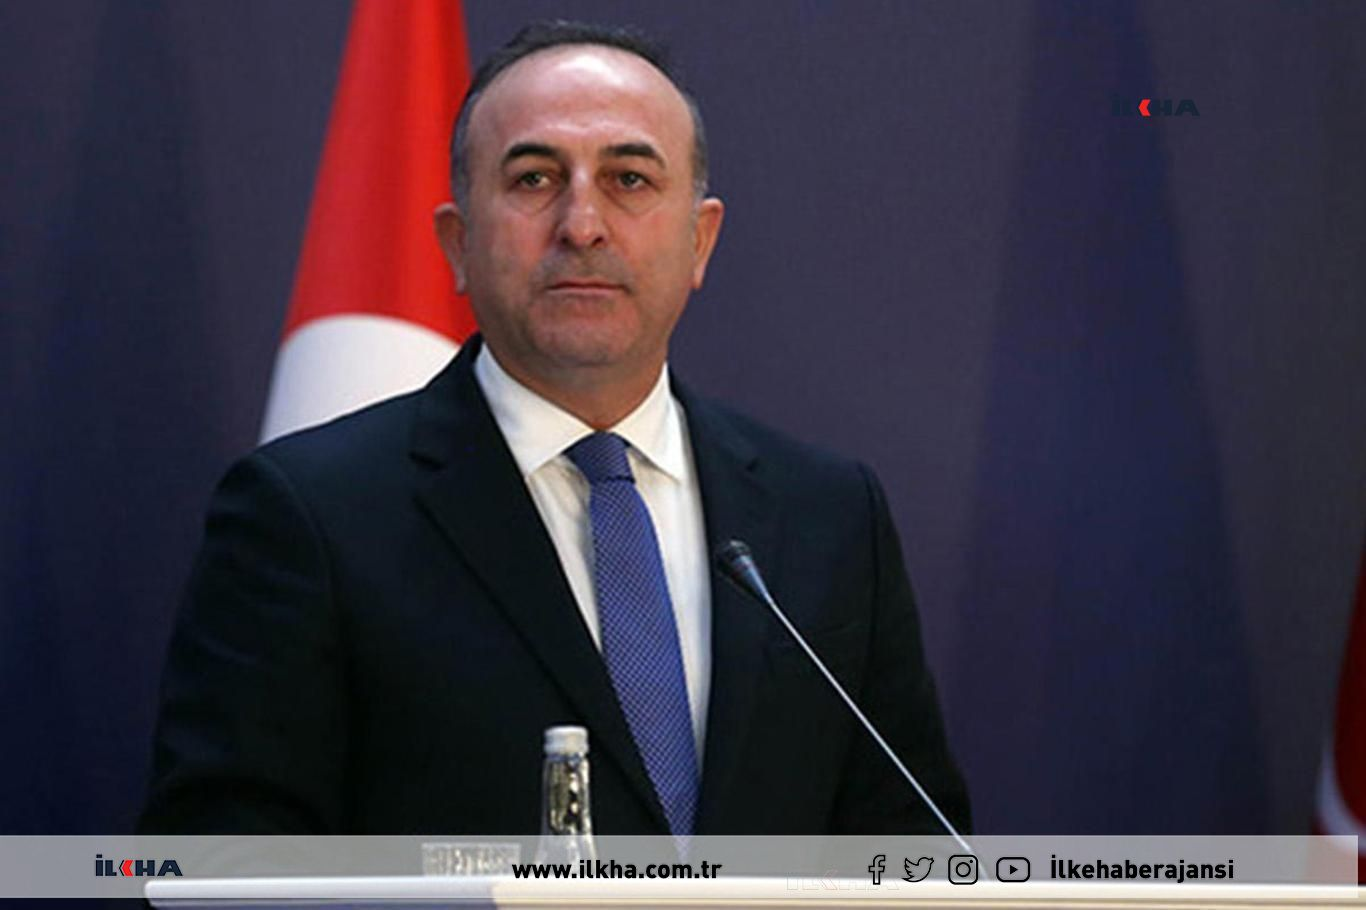 Turkey did and will do its part for a cease-fire and peace in Libya: Çavuşoğlu